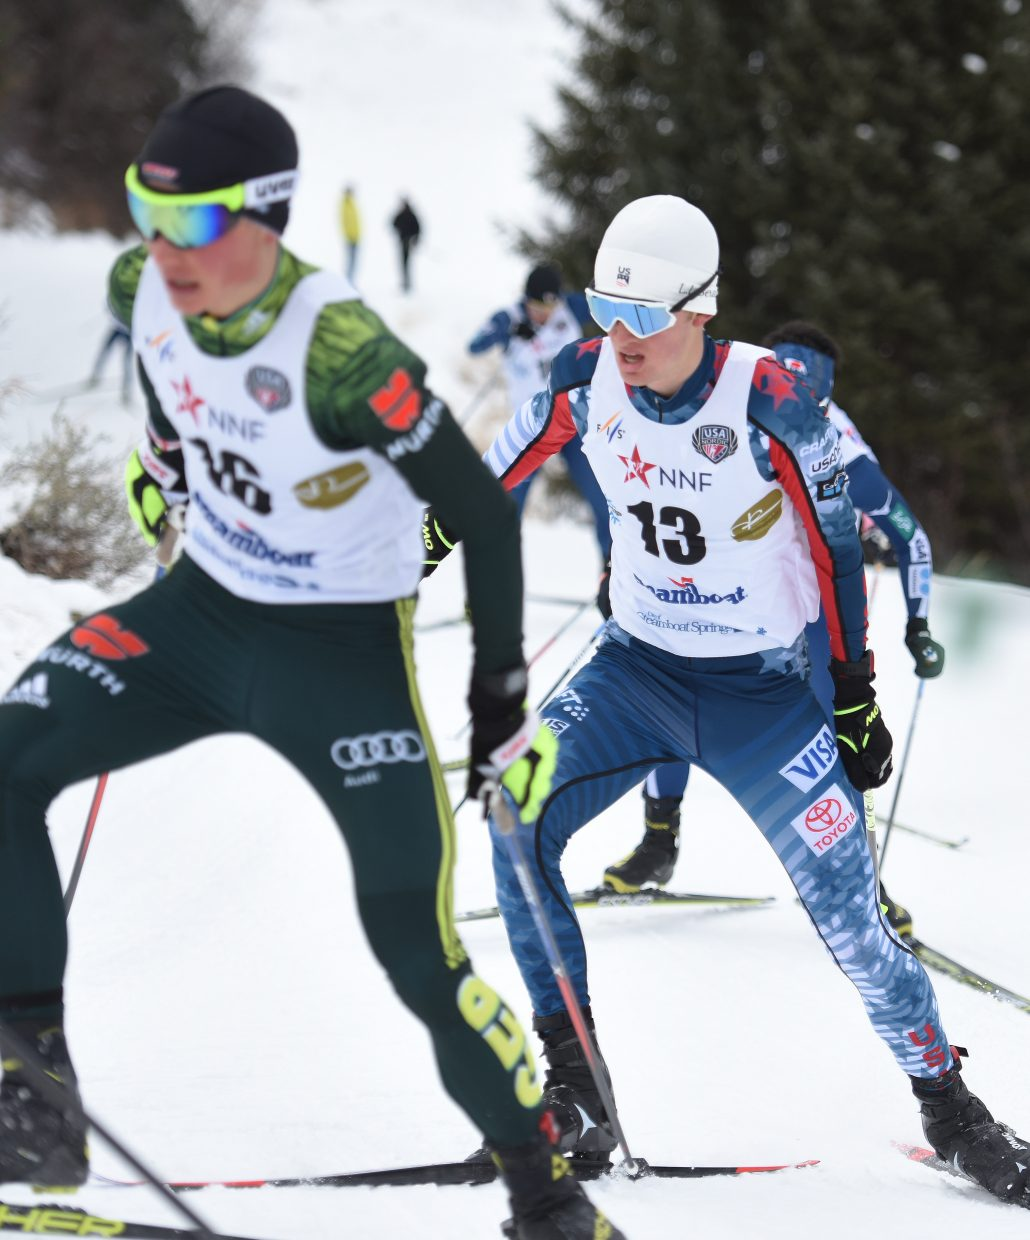 Jasper Good hangs in a pack near the front of the race Saturday during a Continental Cup Nordic combined event in Steamboat Springs.